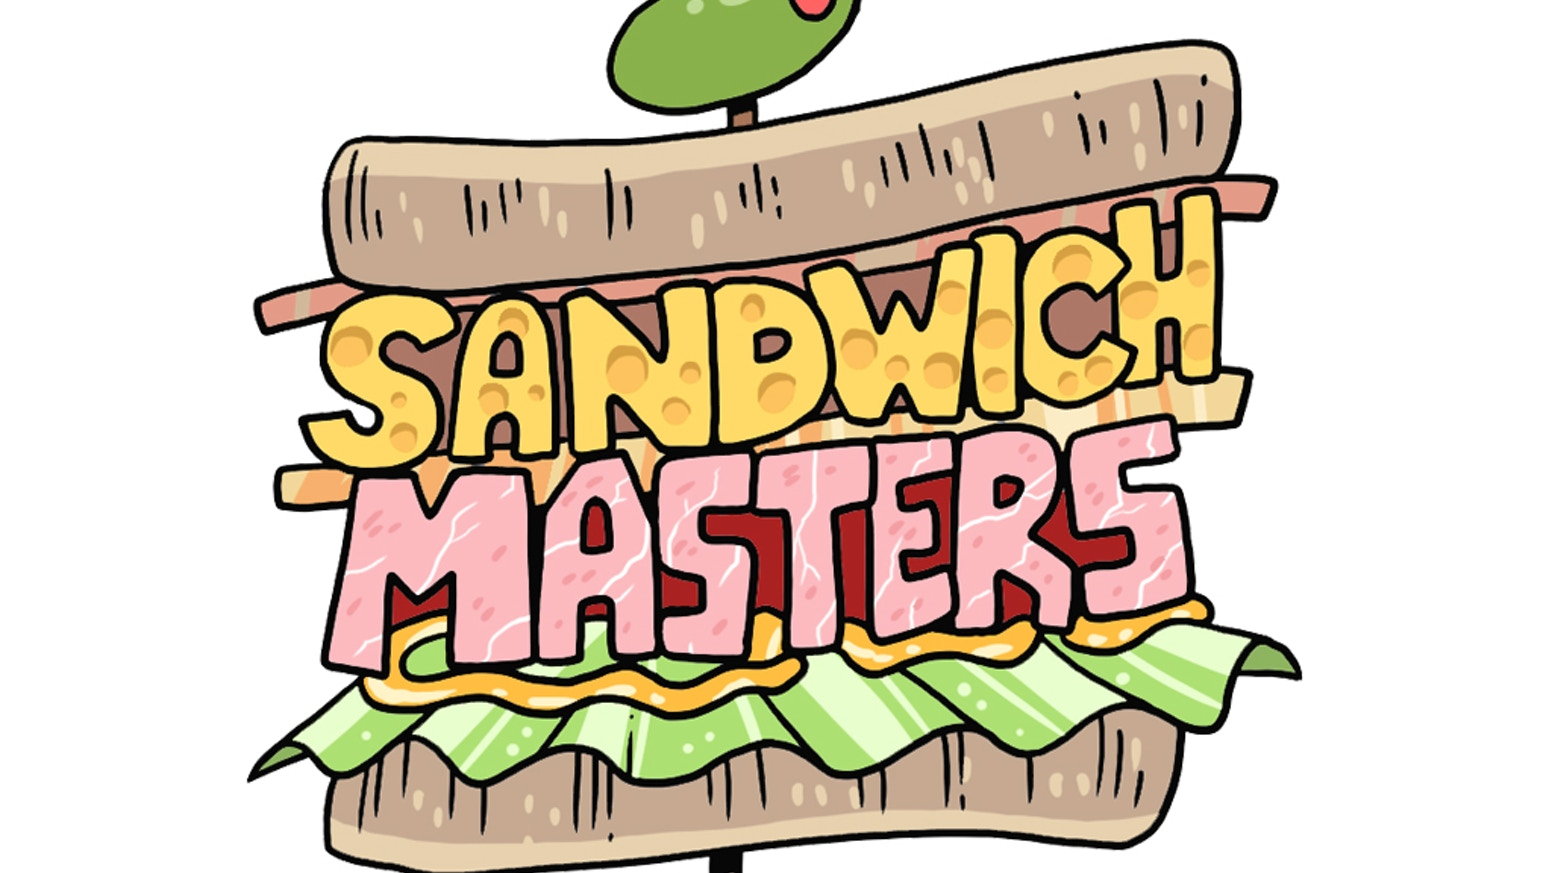 Battle for supremacy in this fast-paced card game for two to four players. Who shall be named the one true Sandwich Master?